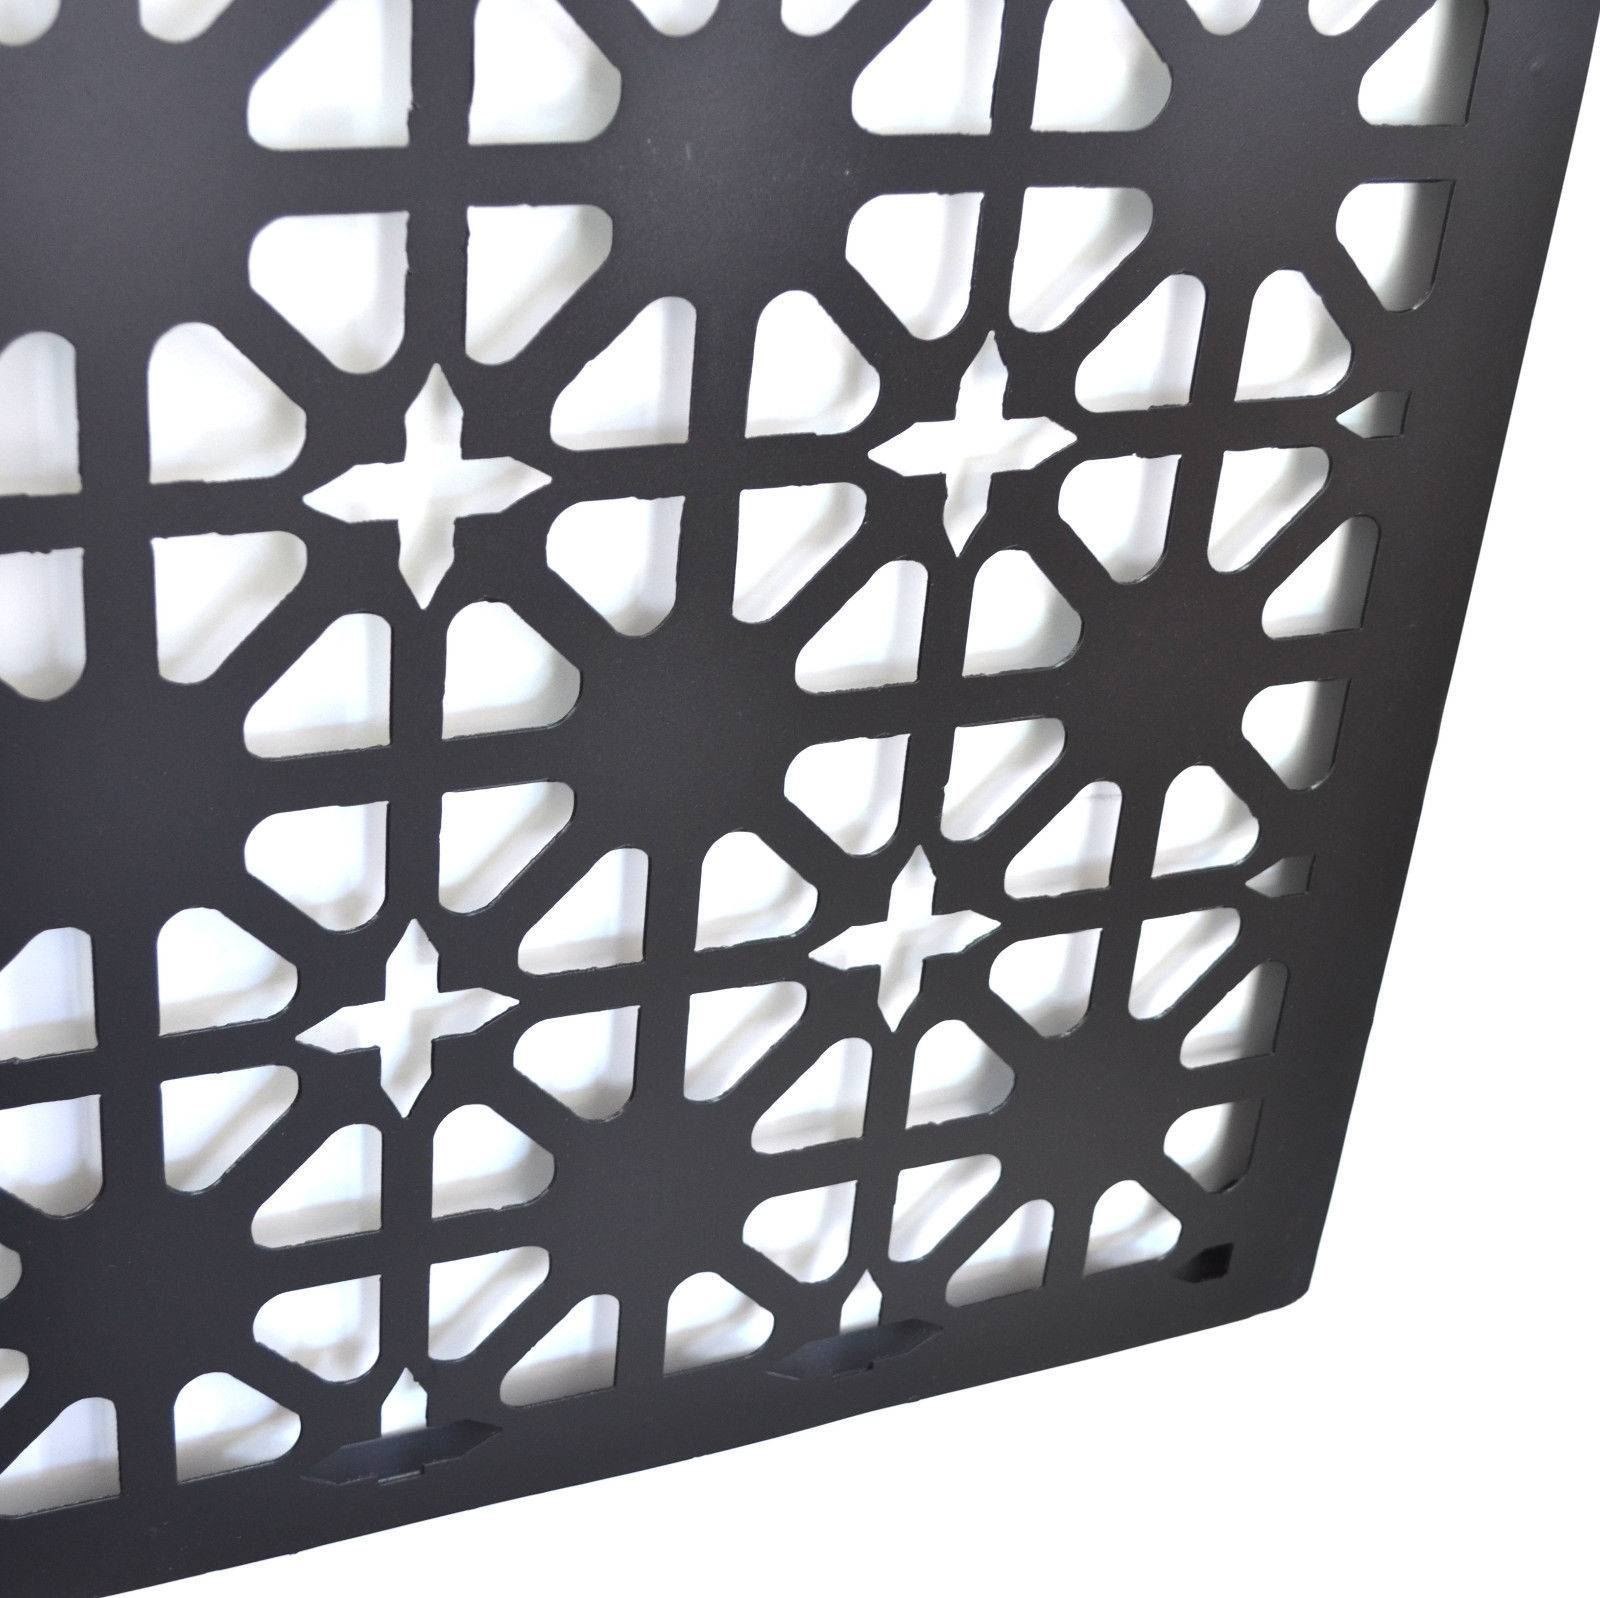 Abstract Metal Wall Art Hanging Laser Cut Out Garden Screen 120Cm Intended For Most Popular Laser Cut Metal Wall Art (View 1 of 20)